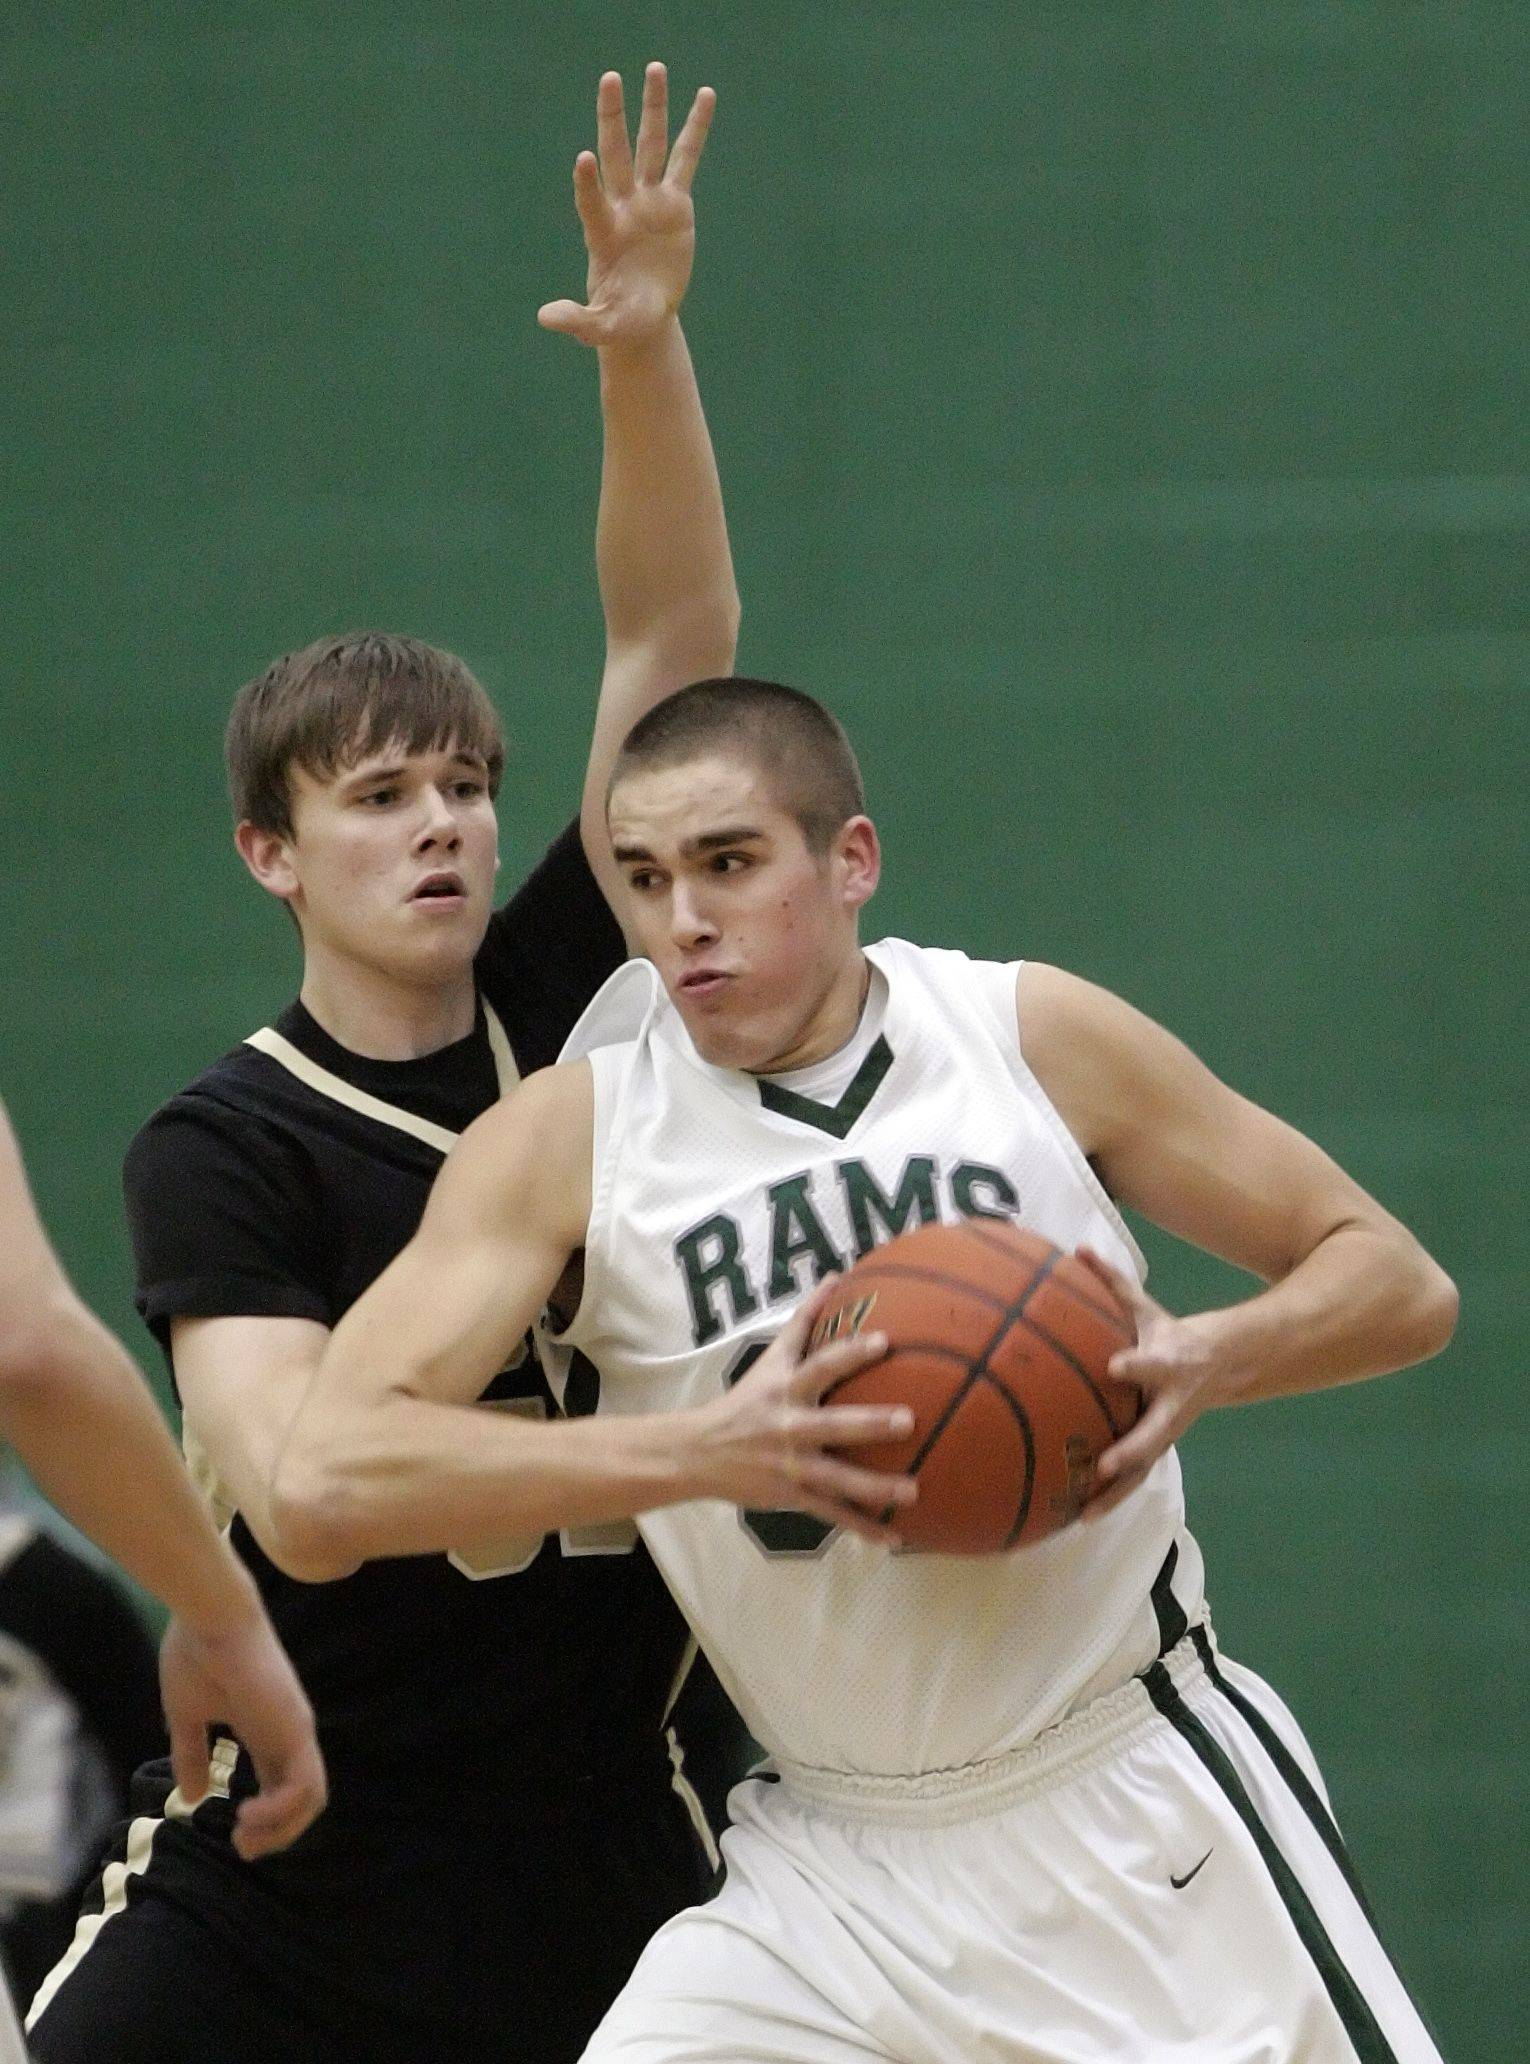 Grayslake Central's Casey Boyle, right, drives on Grayslake North's David Sparks.